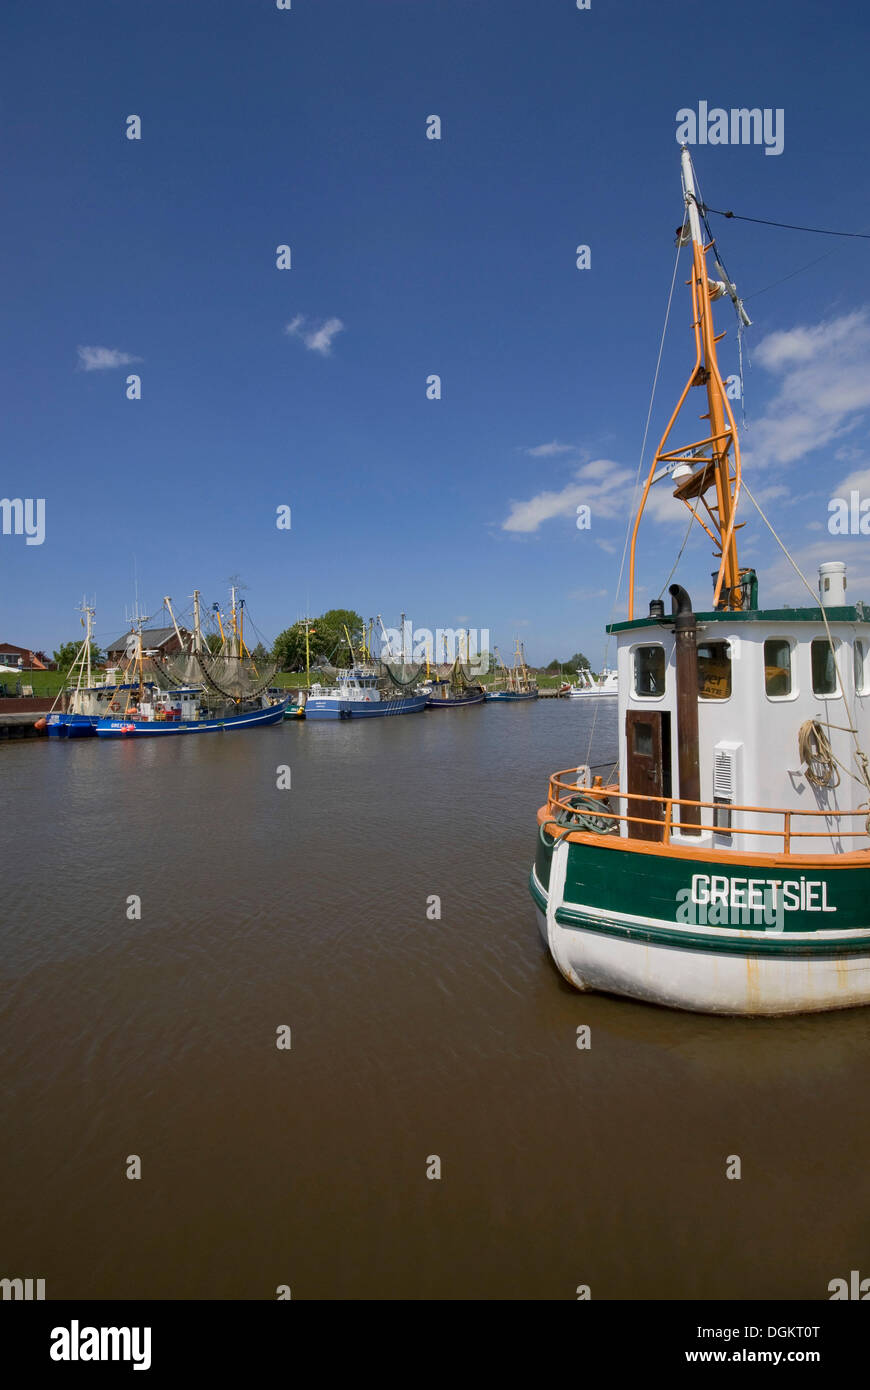 View of Greetsiel harbour with crab boats, Krummhoern, East Frisia, Lower Saxony - Stock Image